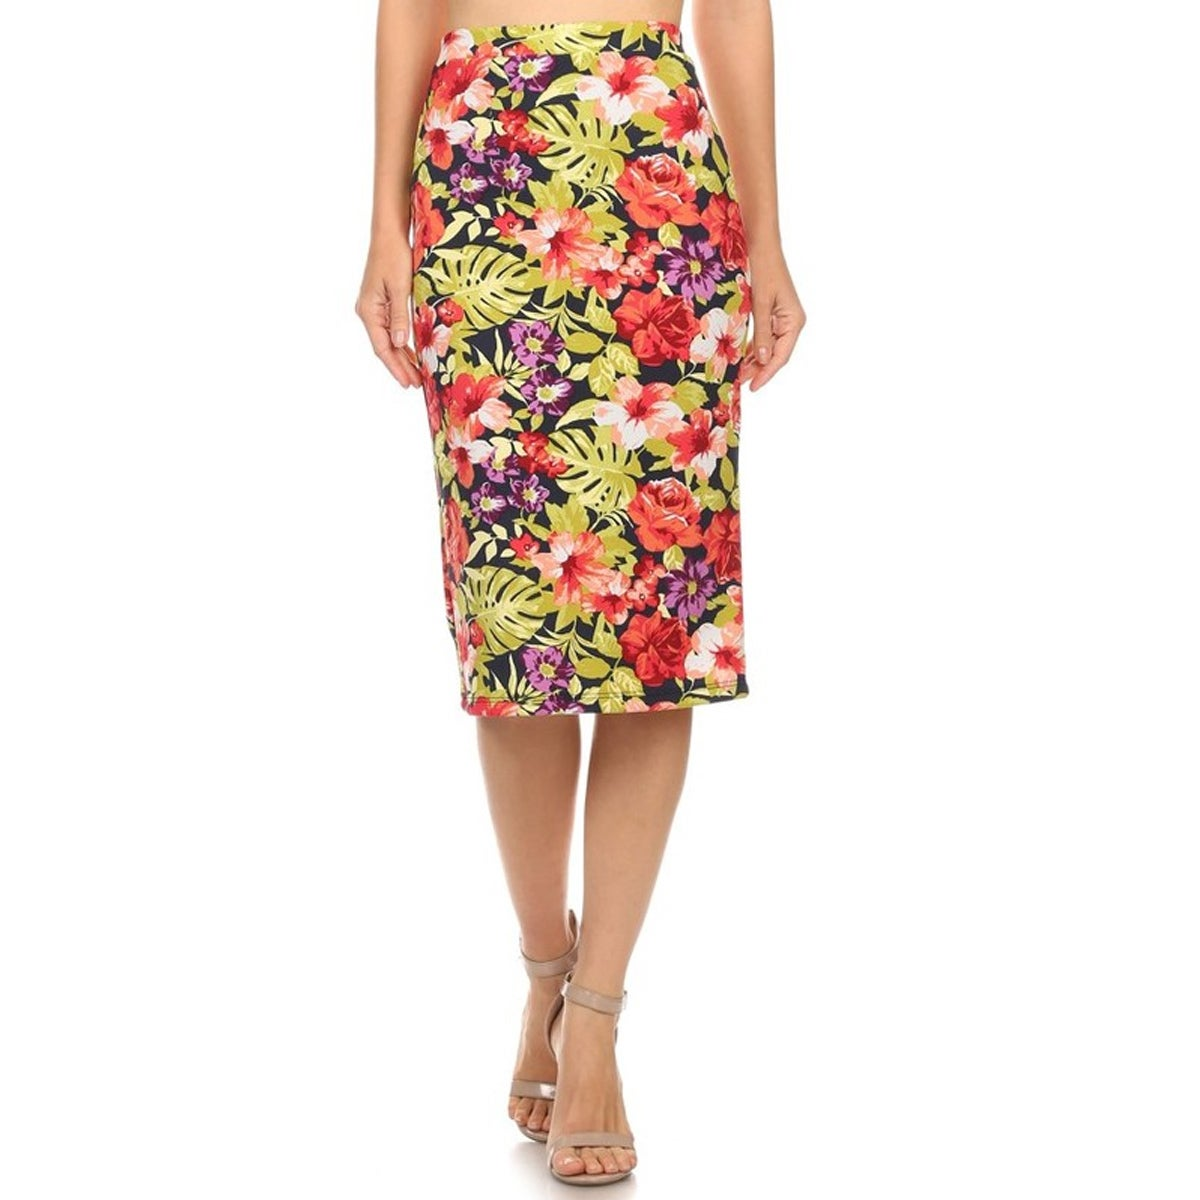 c13800ff573 Details about MOA Collection Women s Floral Polyester and Spandex Knee-length  Pencil Skirt